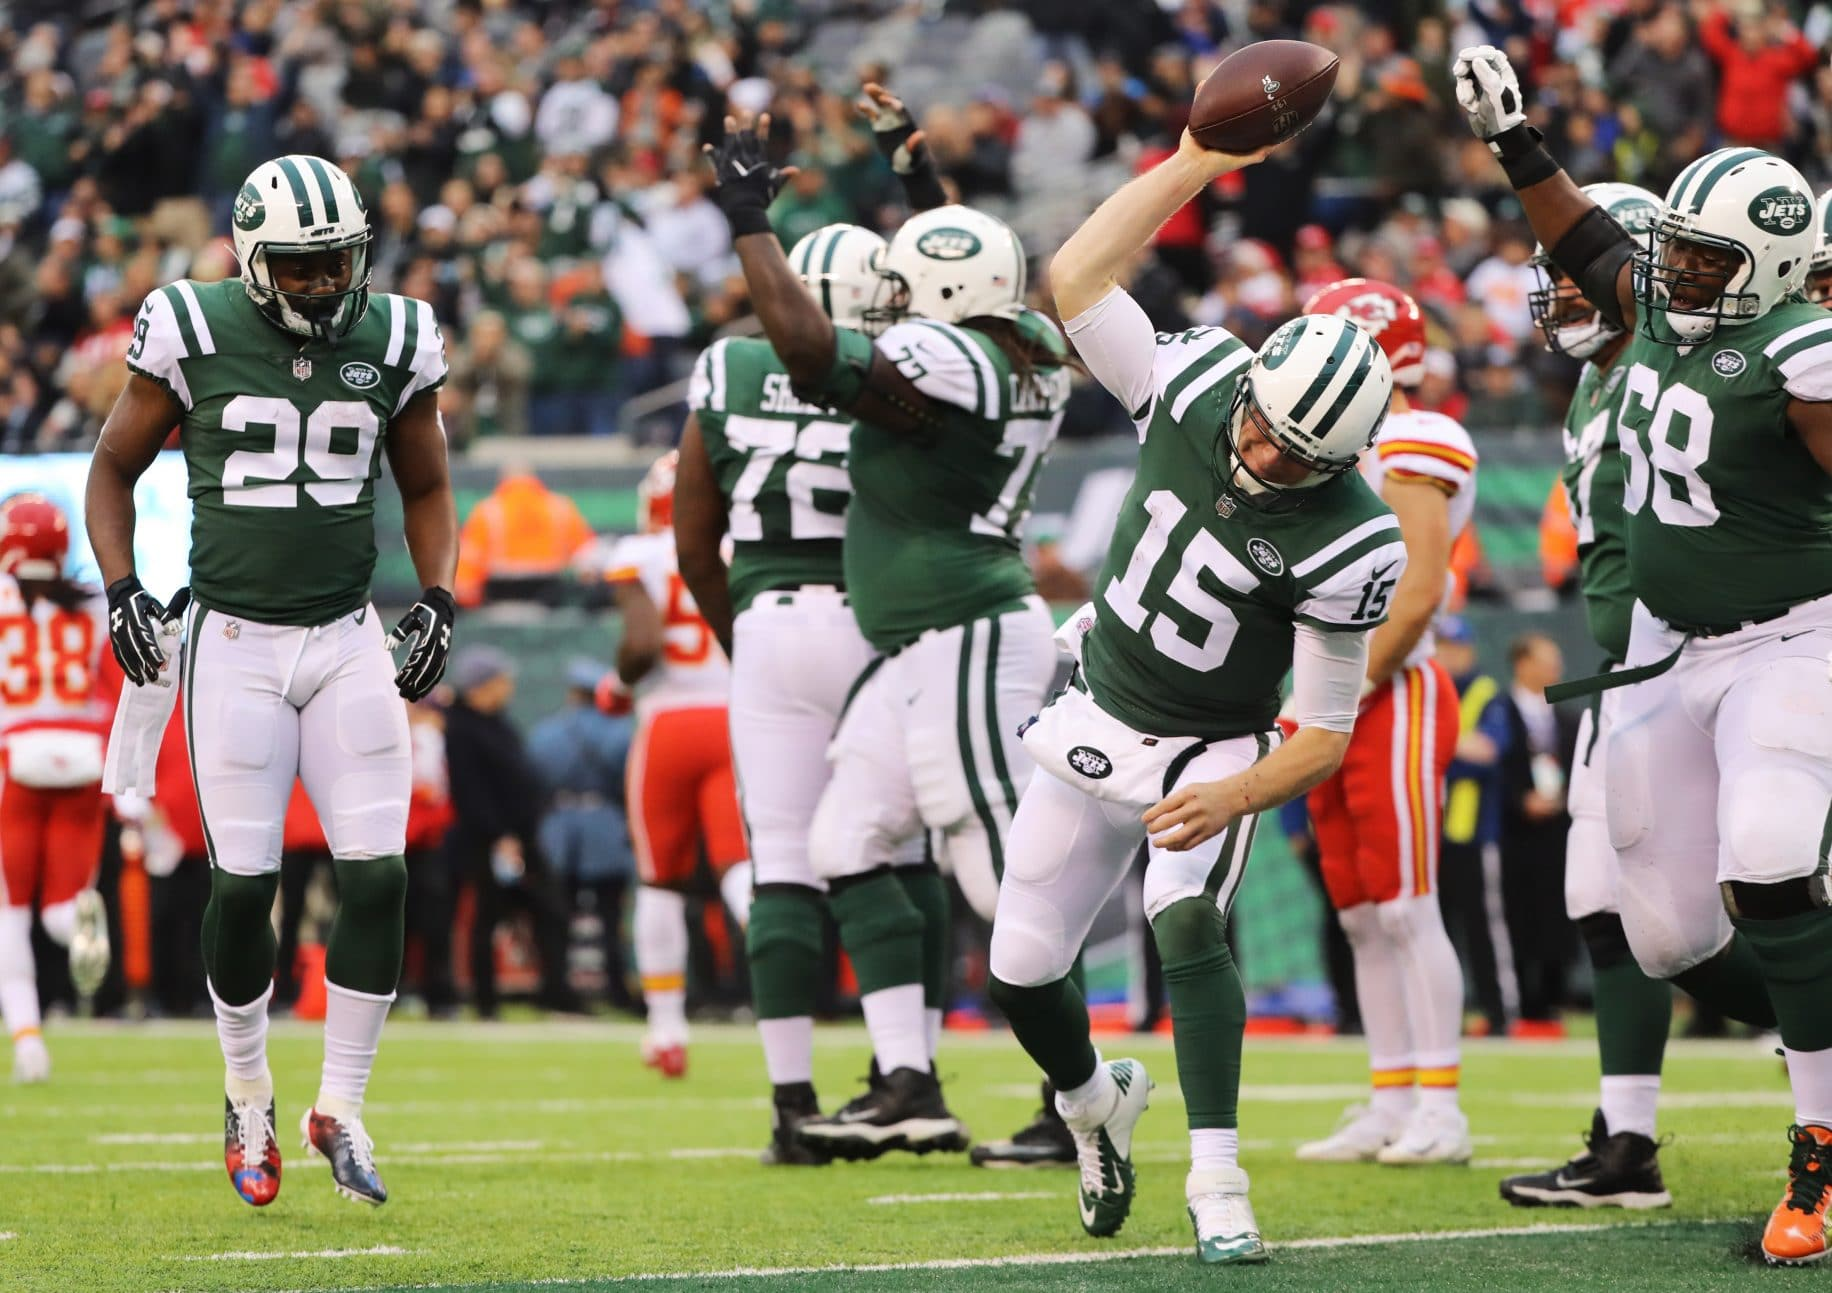 New York Jets need to improve offensive road struggles for playoff hopes